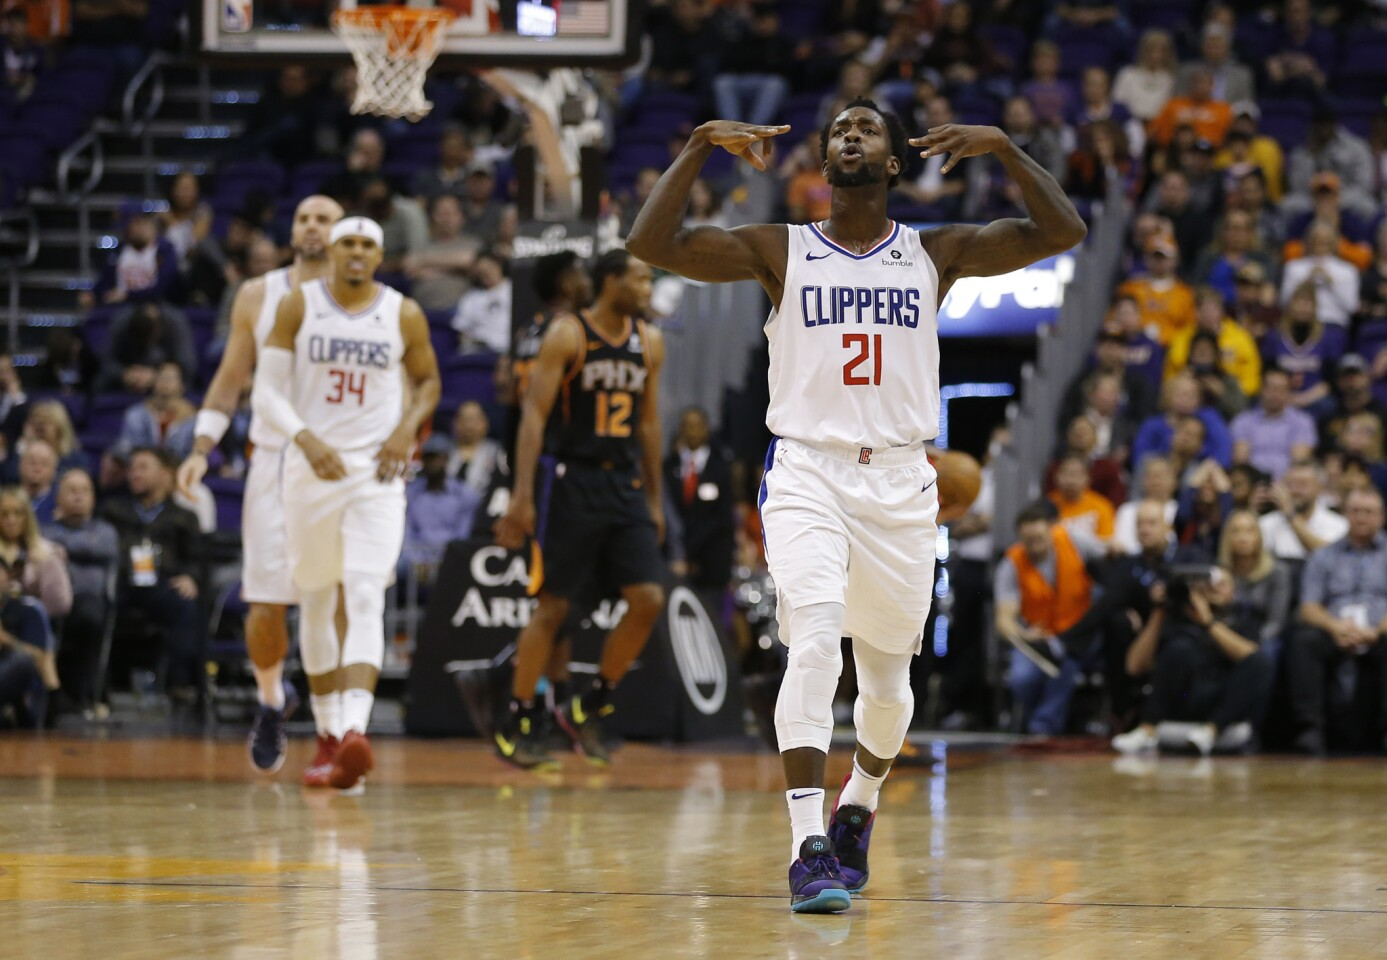 Los Angeles Clippers guard Patrick Beverley (21) in the first half during an NBA basketball game against the Phoenix Suns, Friday, Jan. 4, 2019, in Phoenix. (AP Photo/Rick Scuteri)